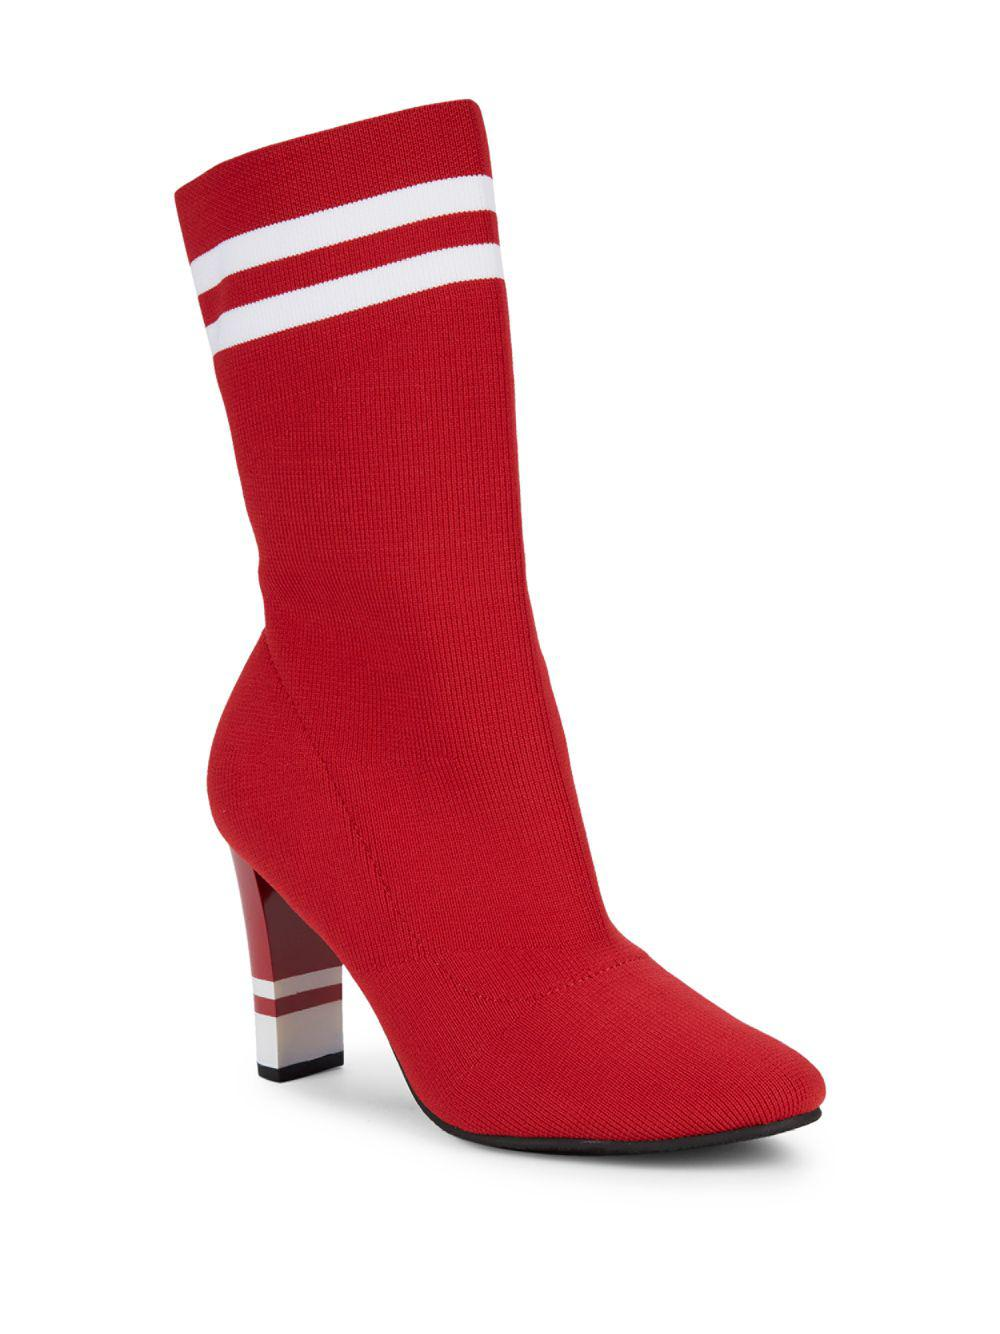 4d7db14239d1c Circus By Sam Edelman Joy Stretch Fabric Booties in Red - Lyst